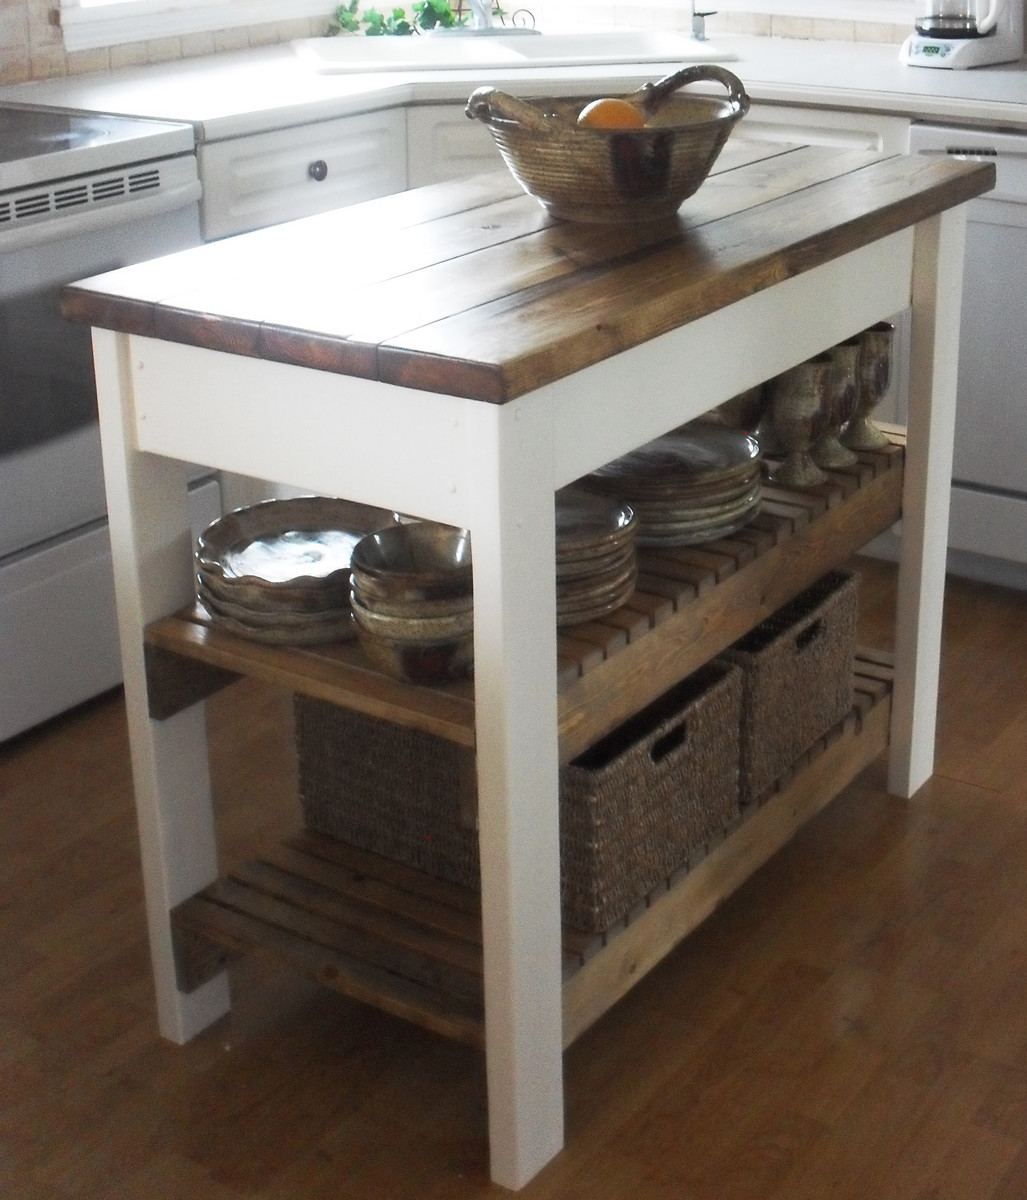 Diy Kitchen Island Plans ana white | kitchen island - diy projects